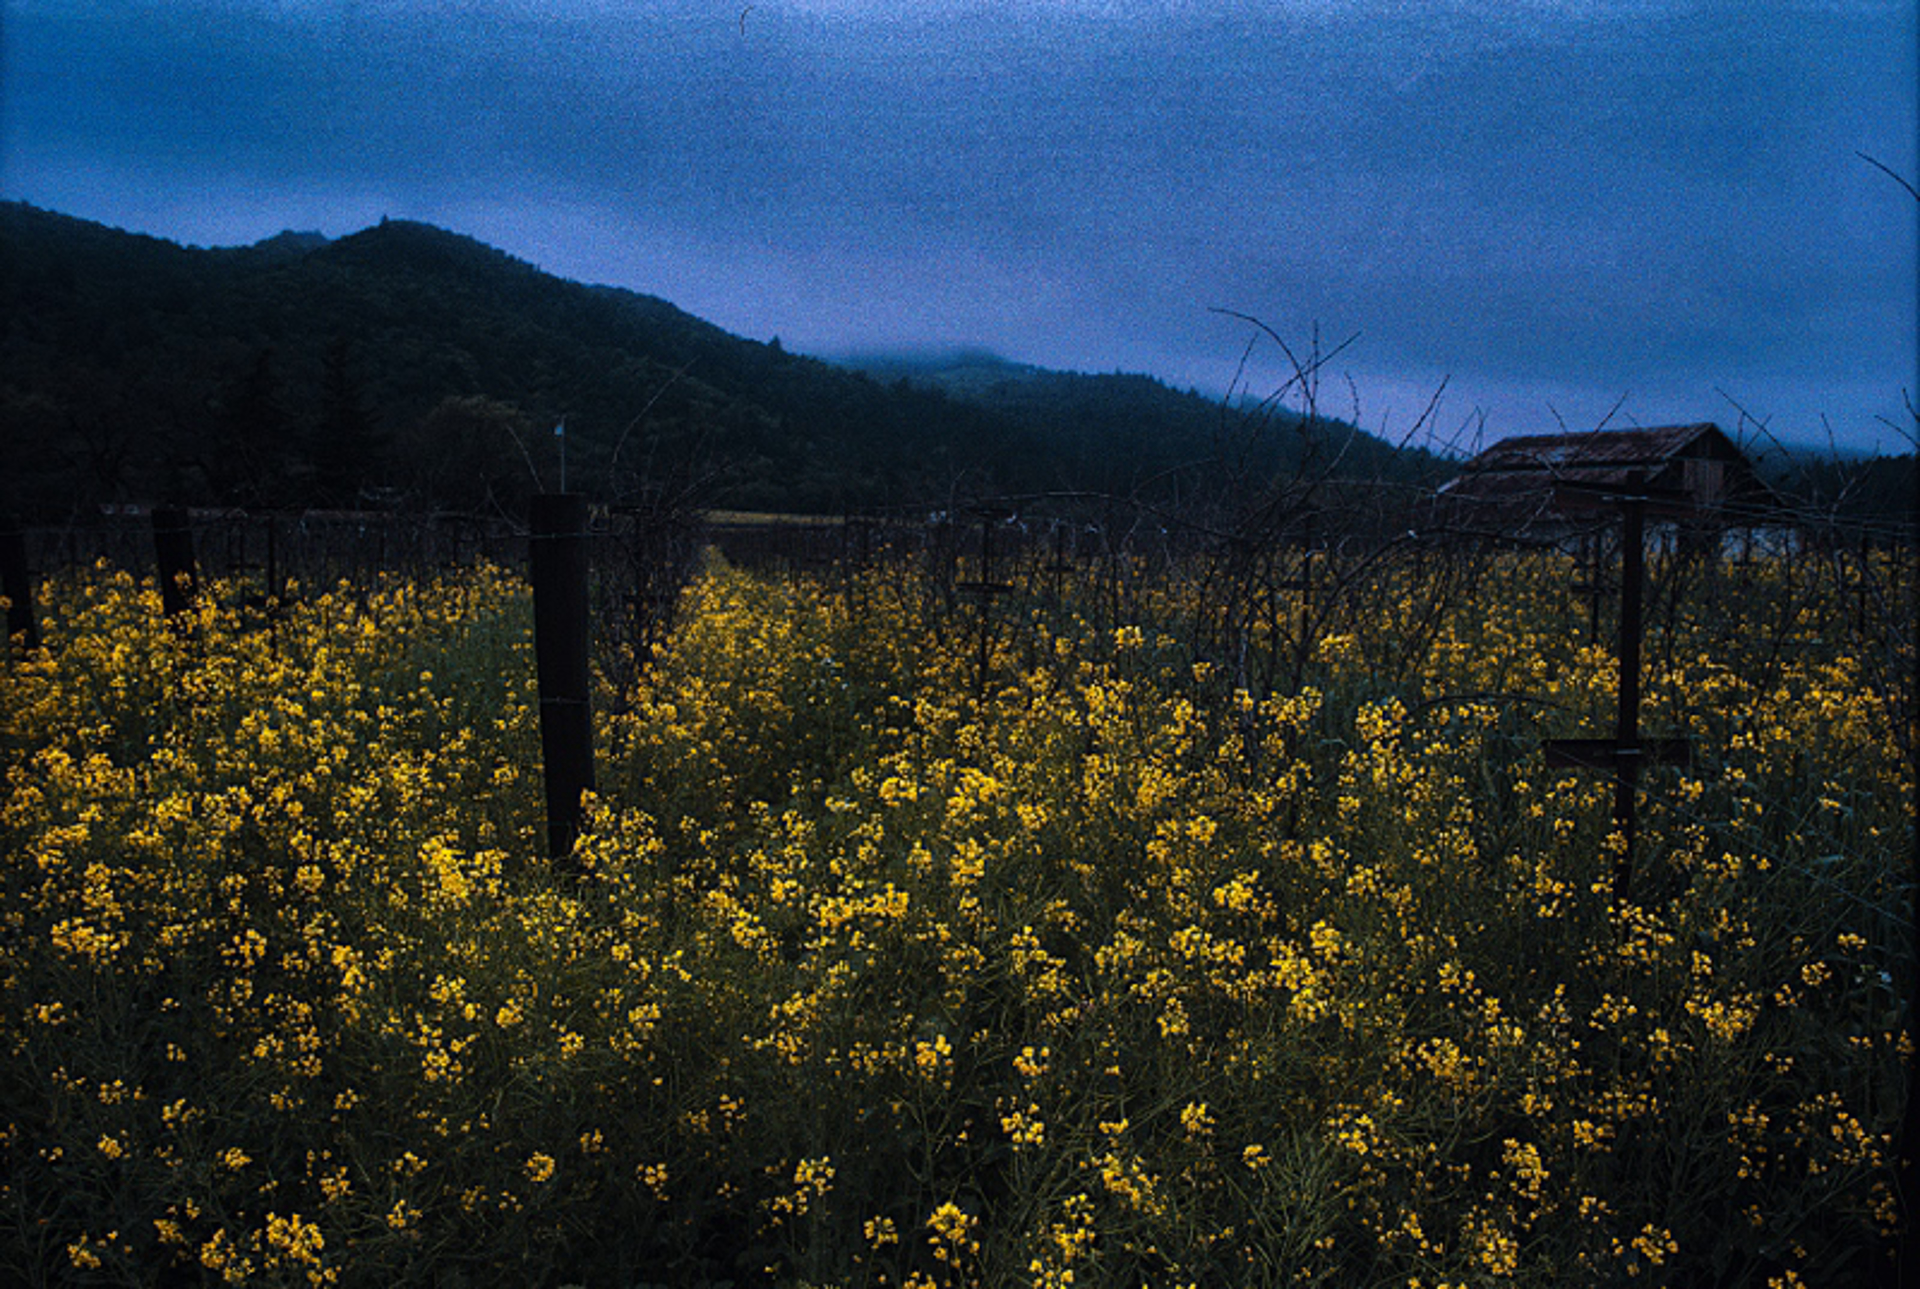 Mustard on a Cloudy Day by Sam Aslanian